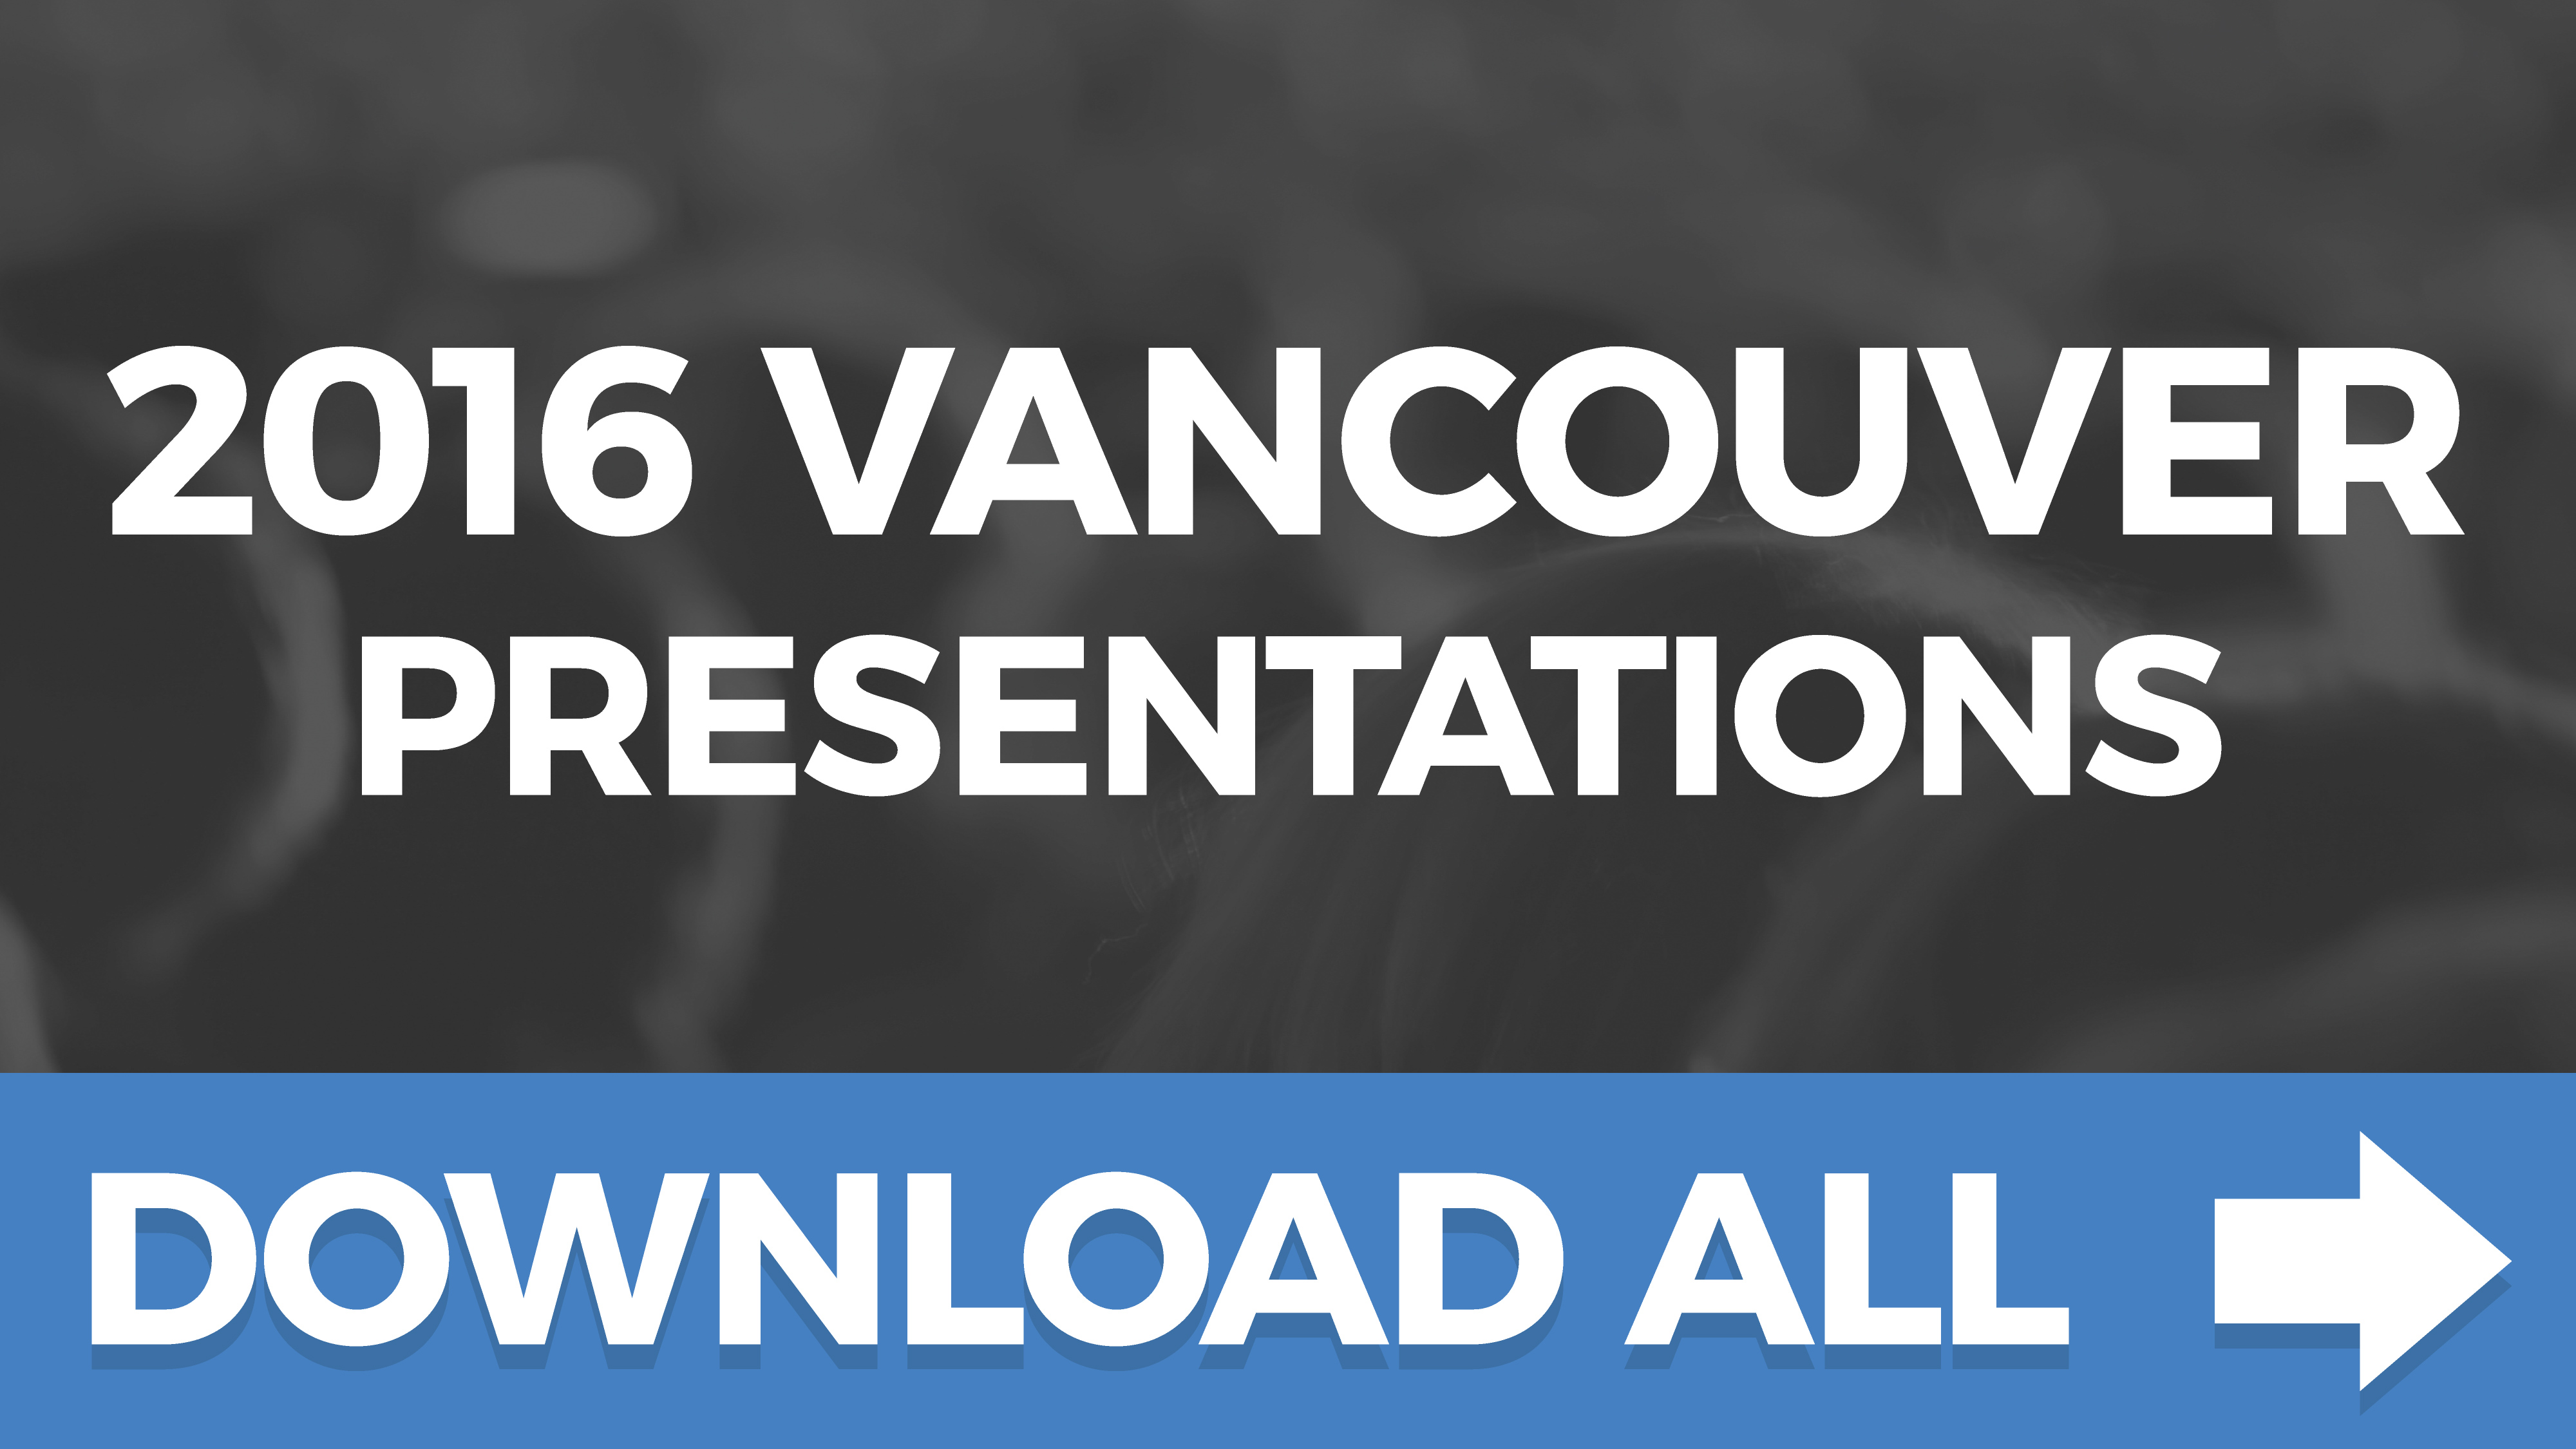 2016 Vancouver All Presentations